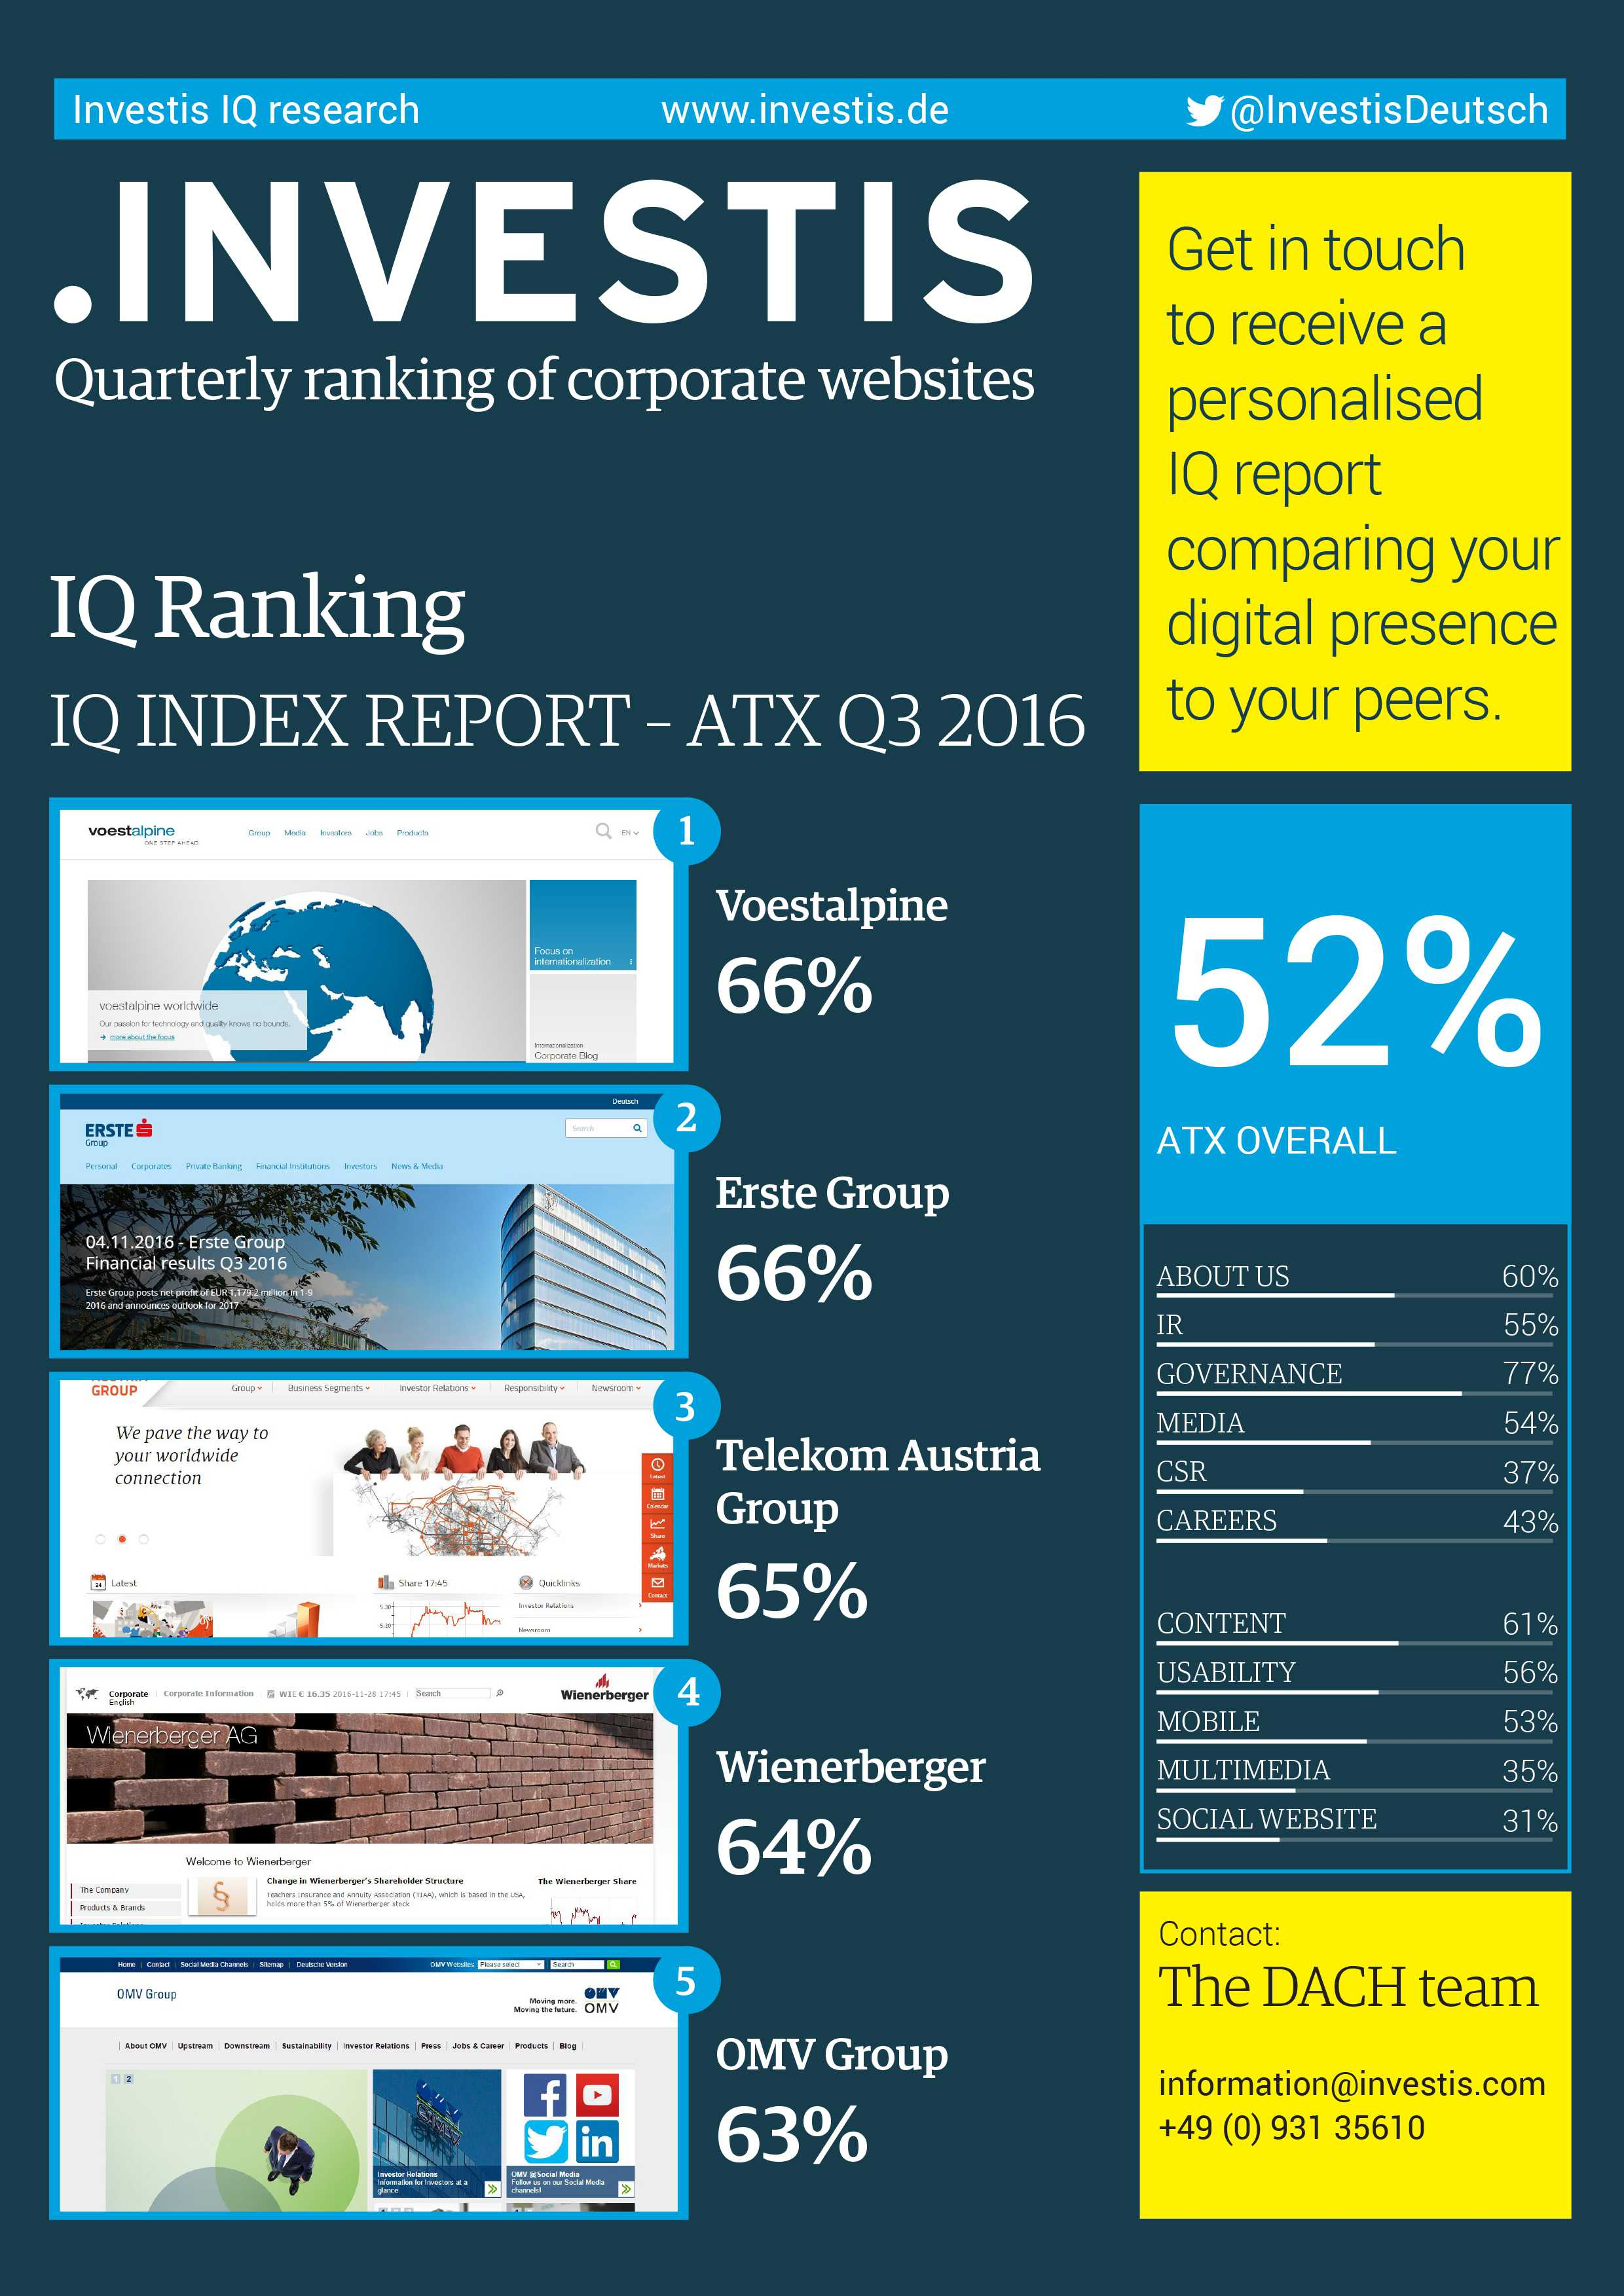 ATX Q3 2015 index report